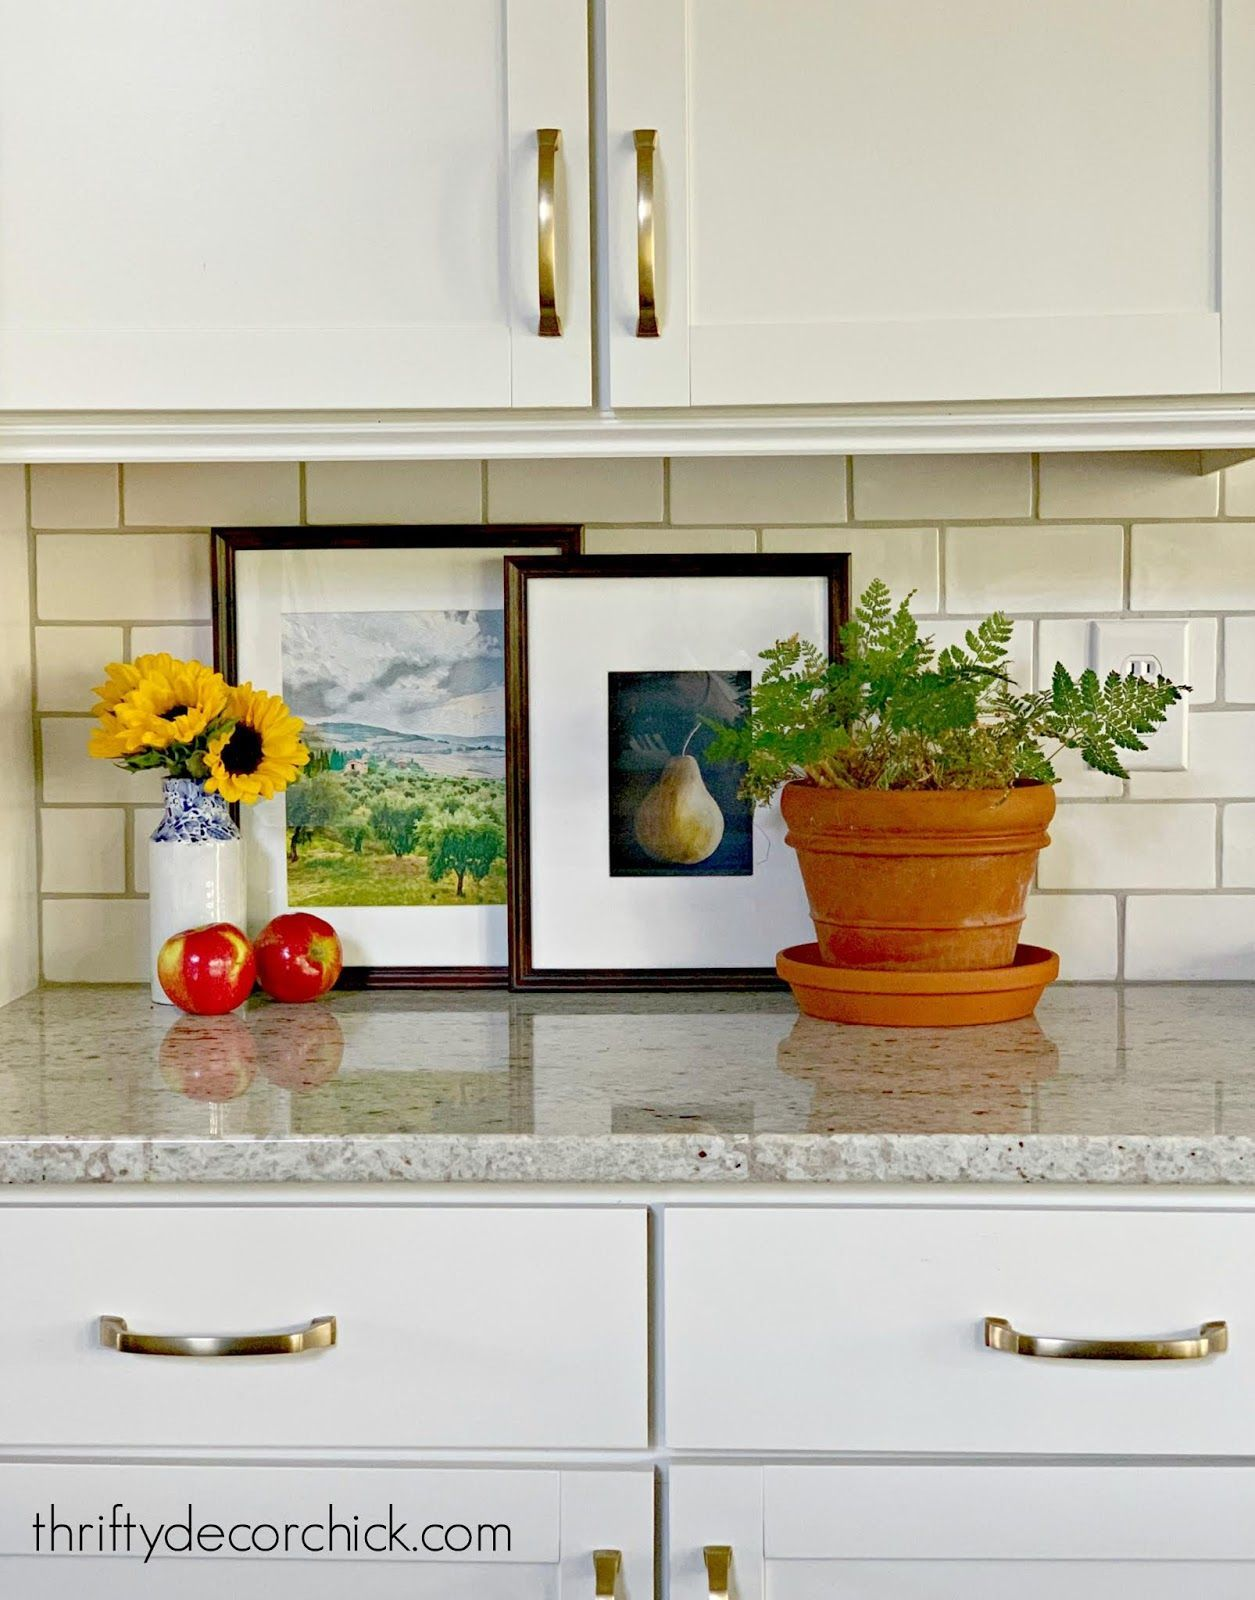 Pin on Home DIY Projects Youll Love